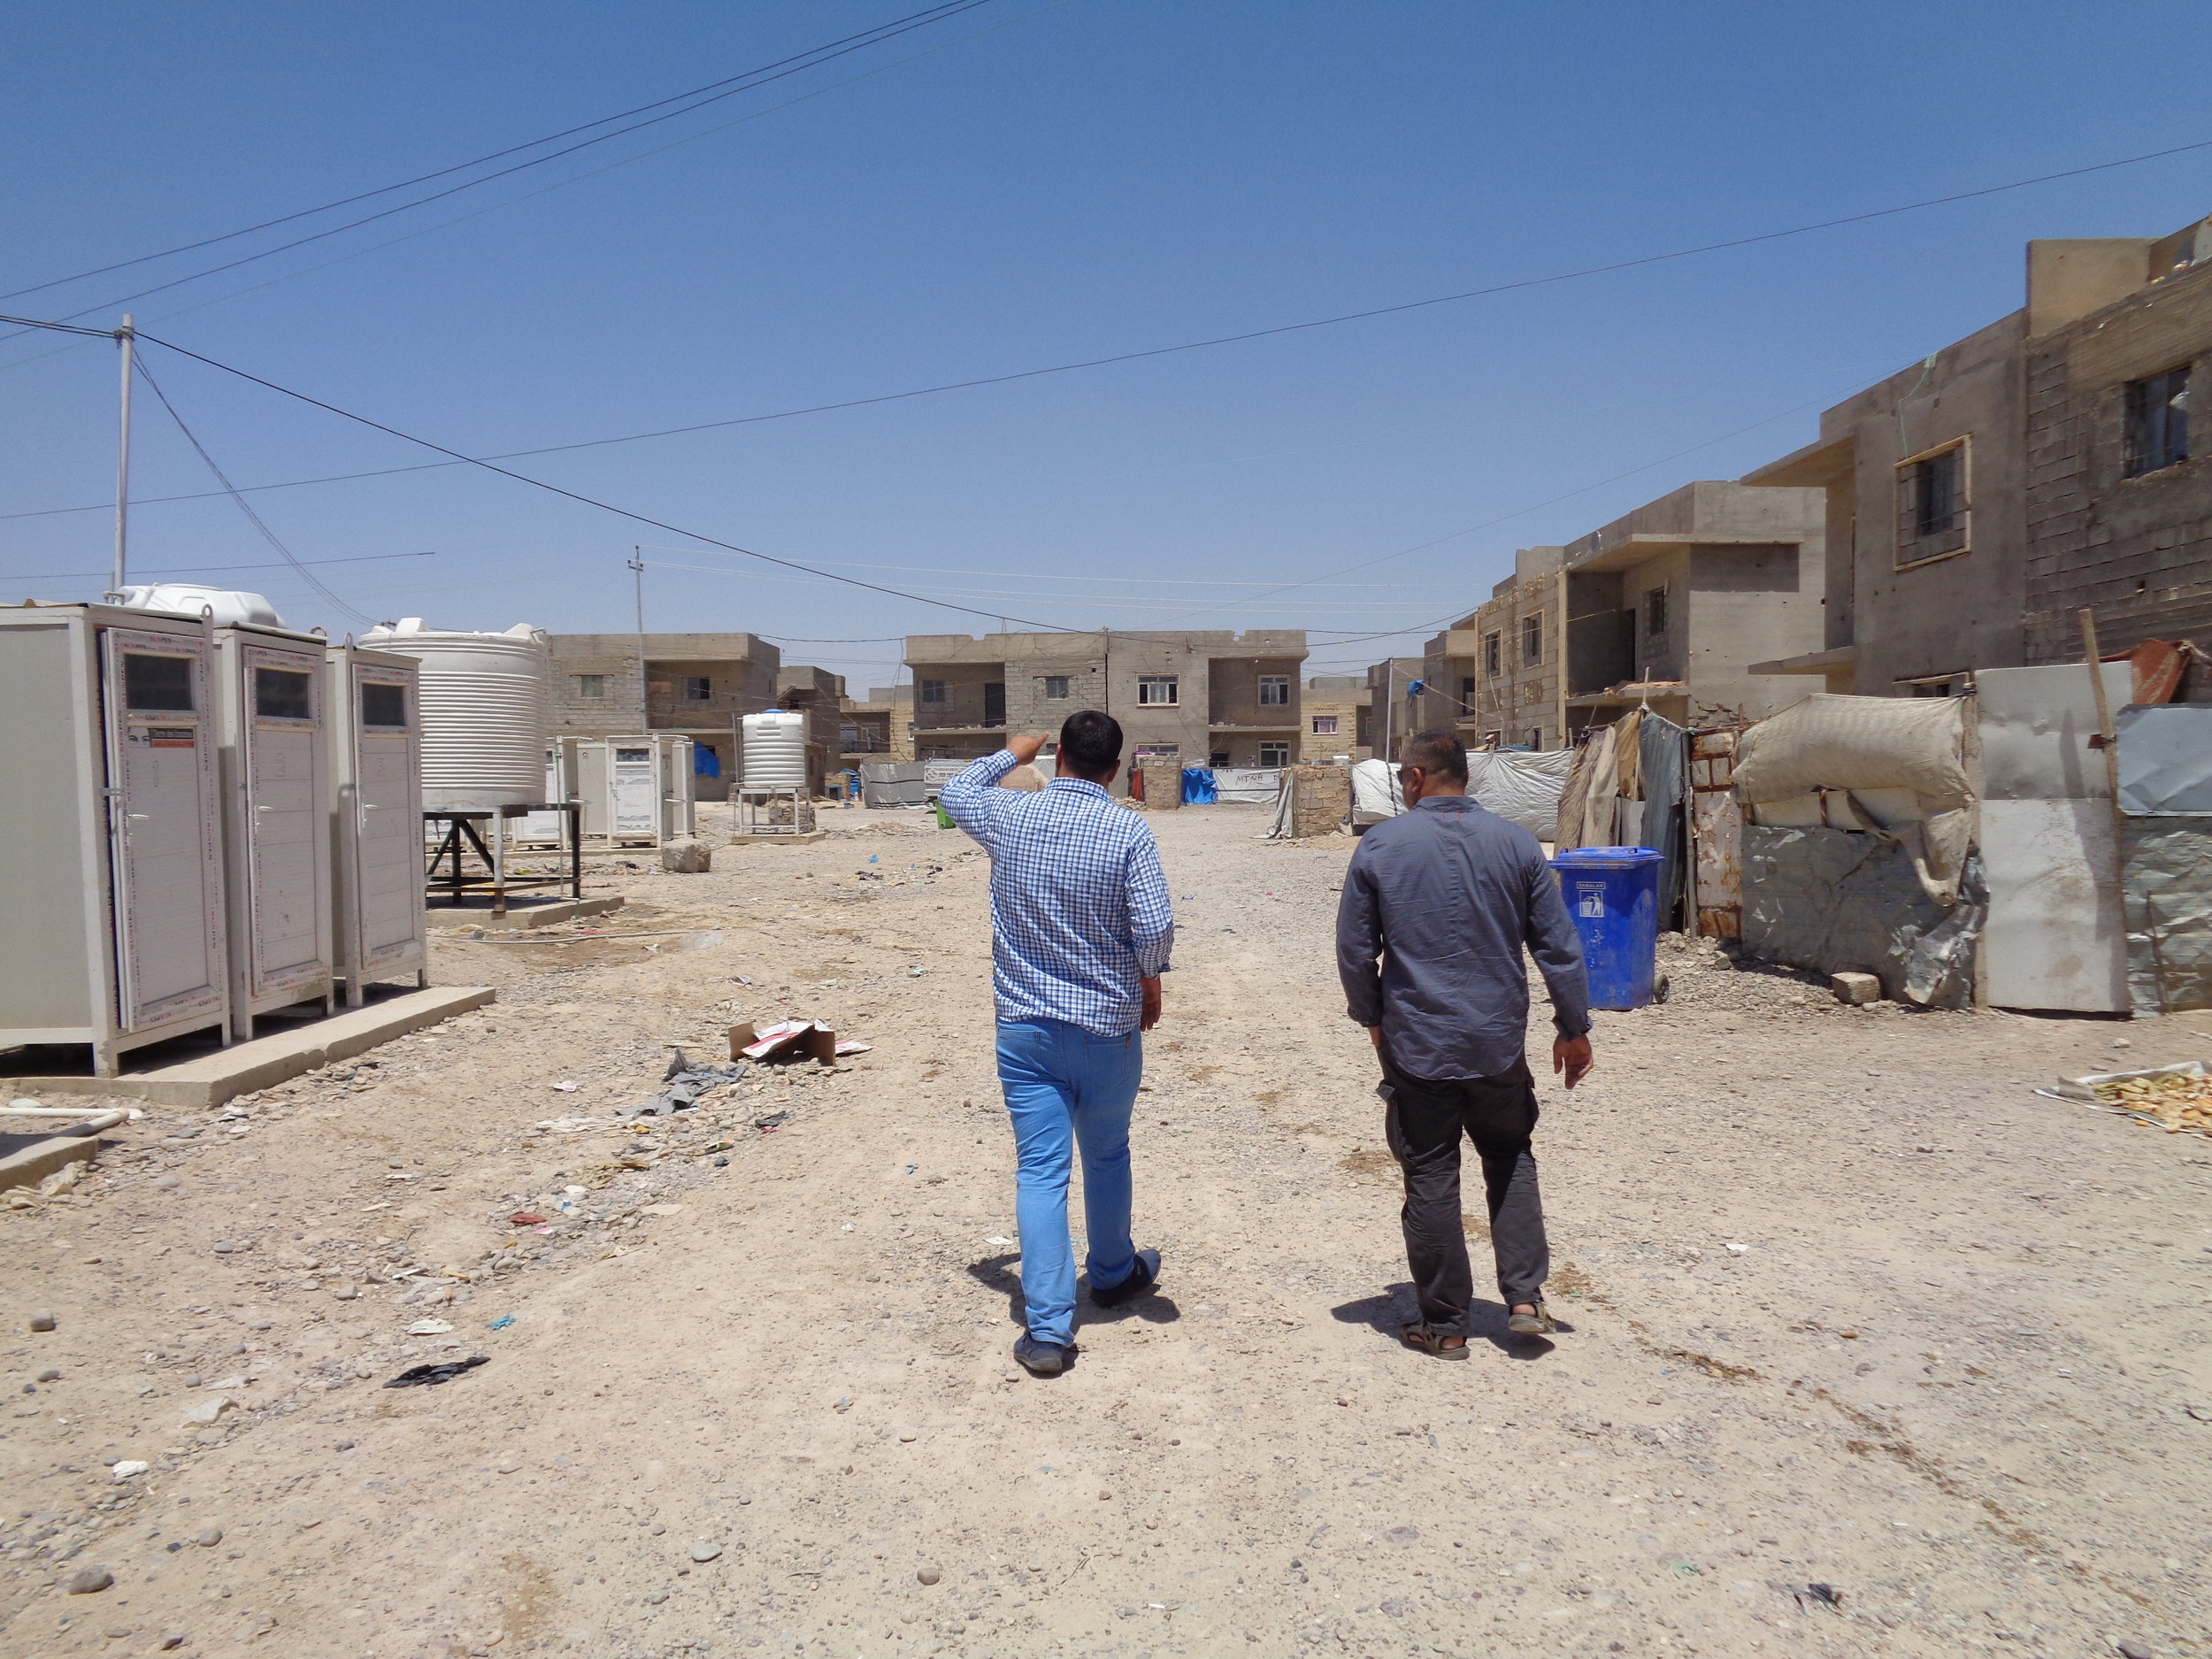 More than 7,000 internally displaced Iraqis live in this camp in Salahaddin governorate in northern Iraq.